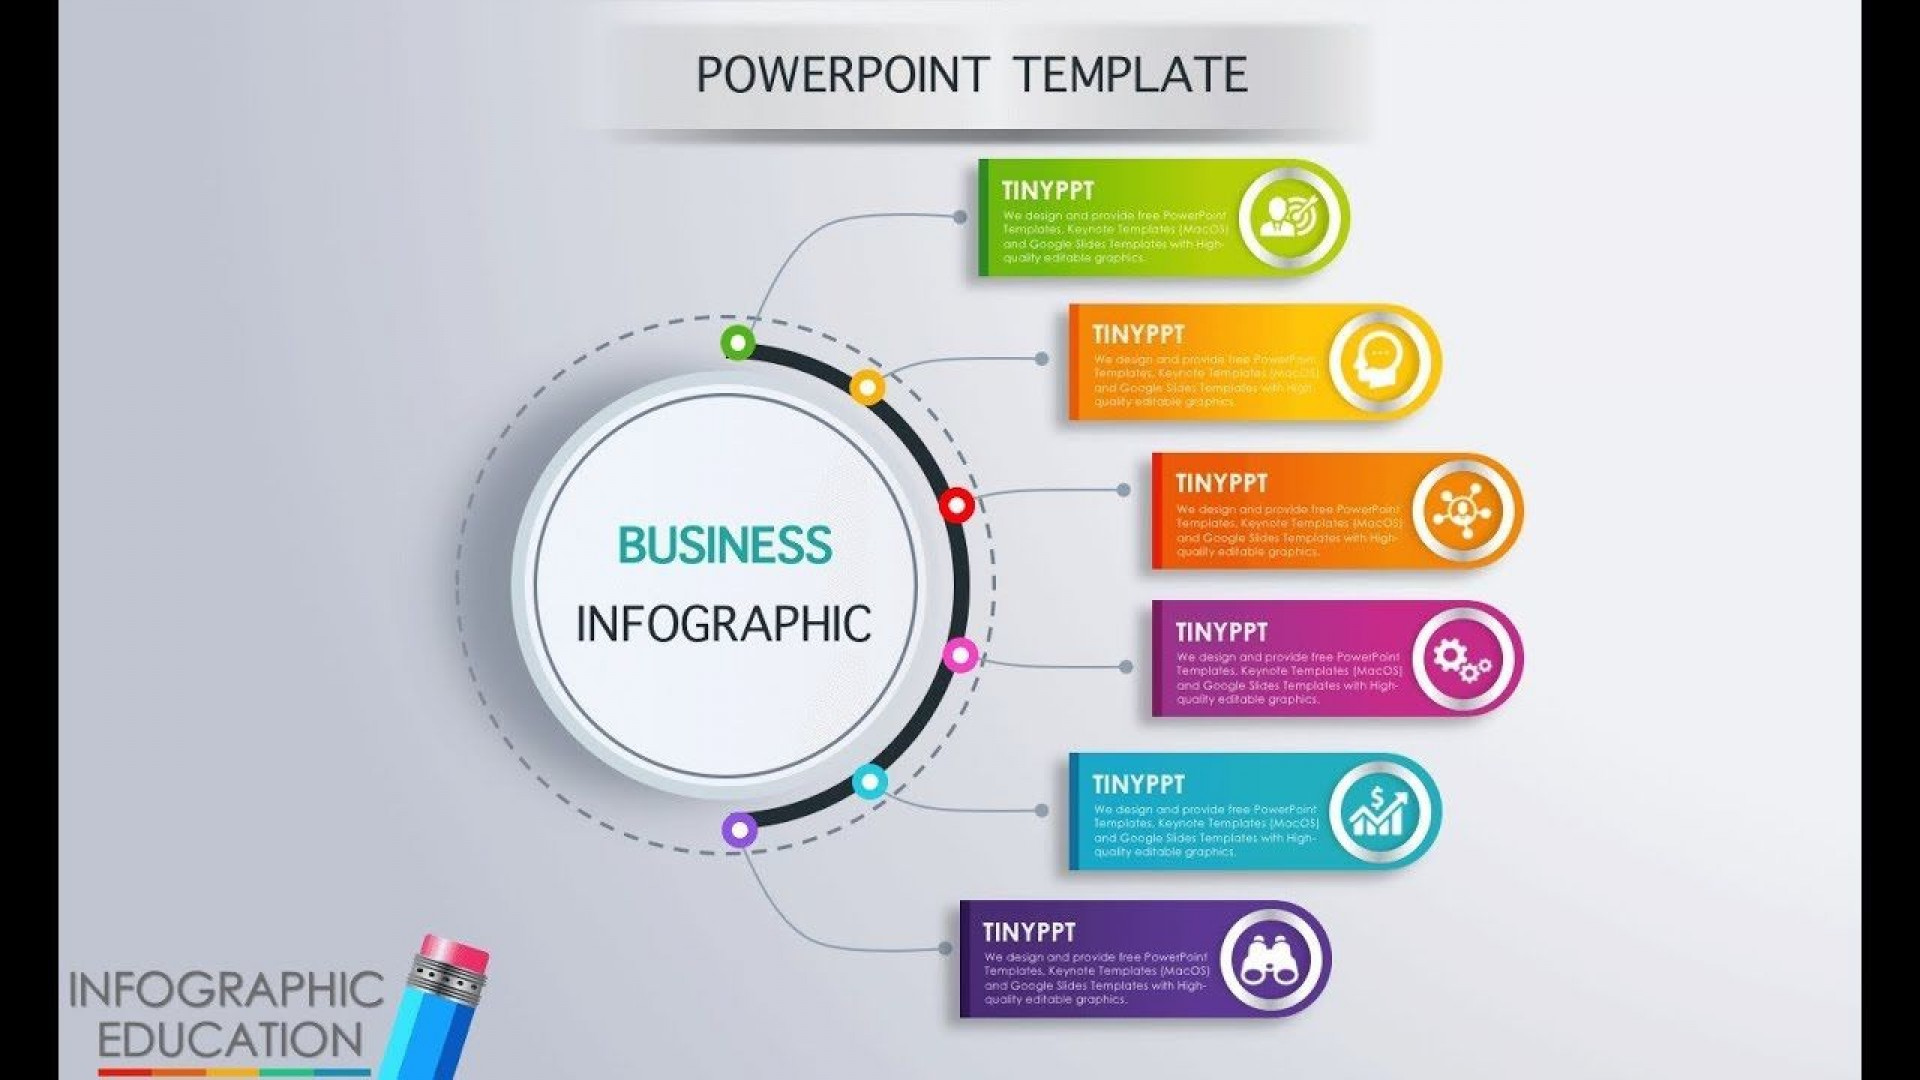 002 Singular 3d Animated Powerpoint Template Free Download 2016 Picture 1920